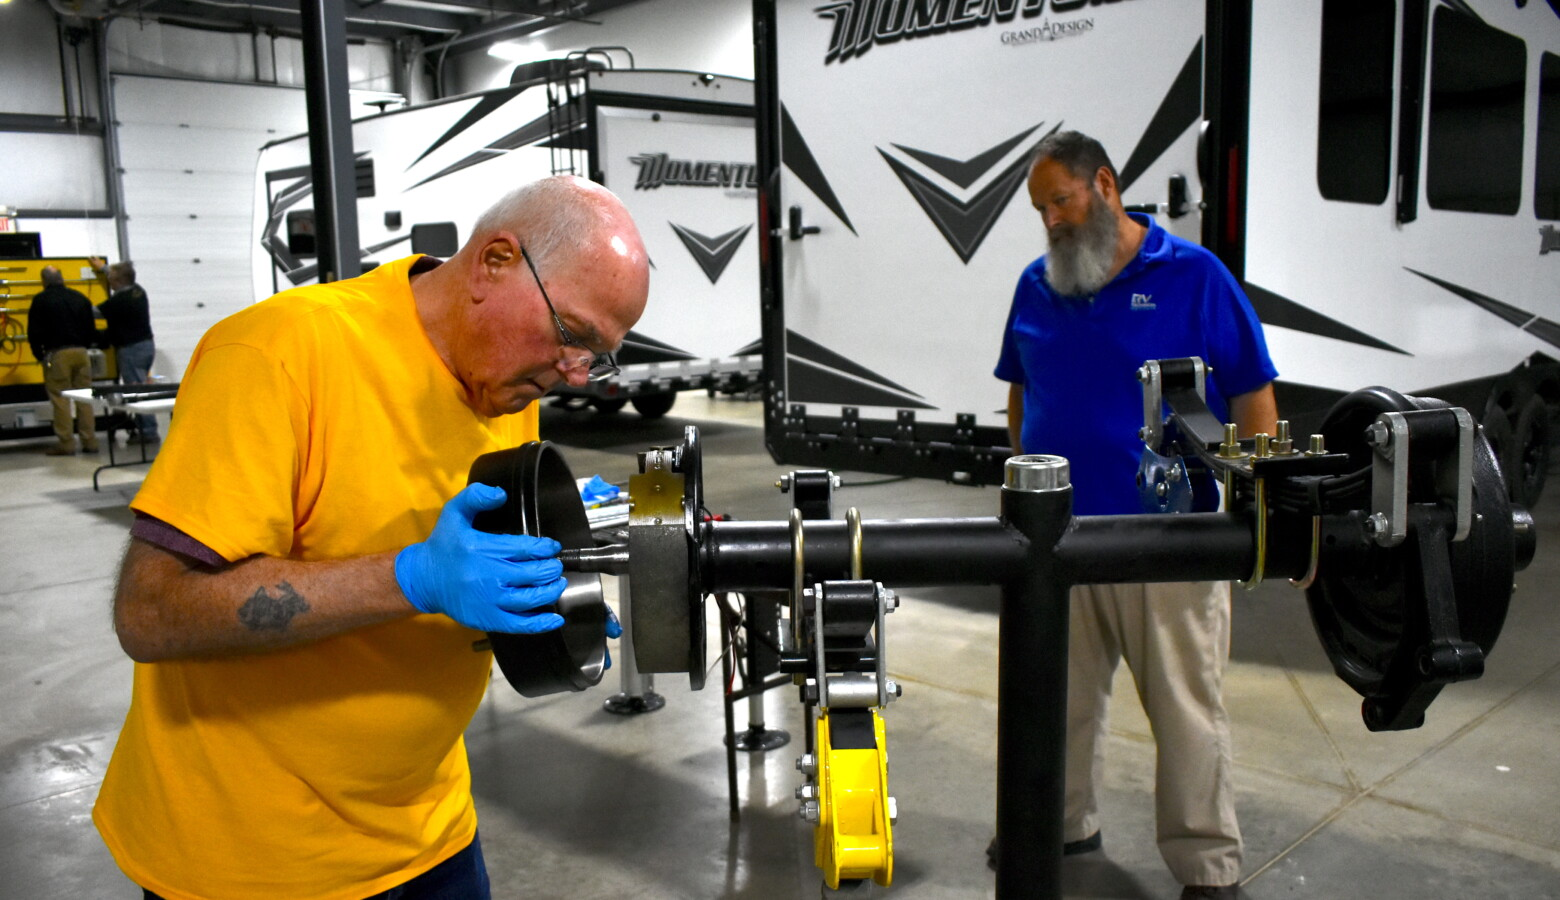 Ralph Decker completes his last practical exam under the supervision of instructor Mike Curl at the RV Technical Institute. (Justin Hicks/IPB News)